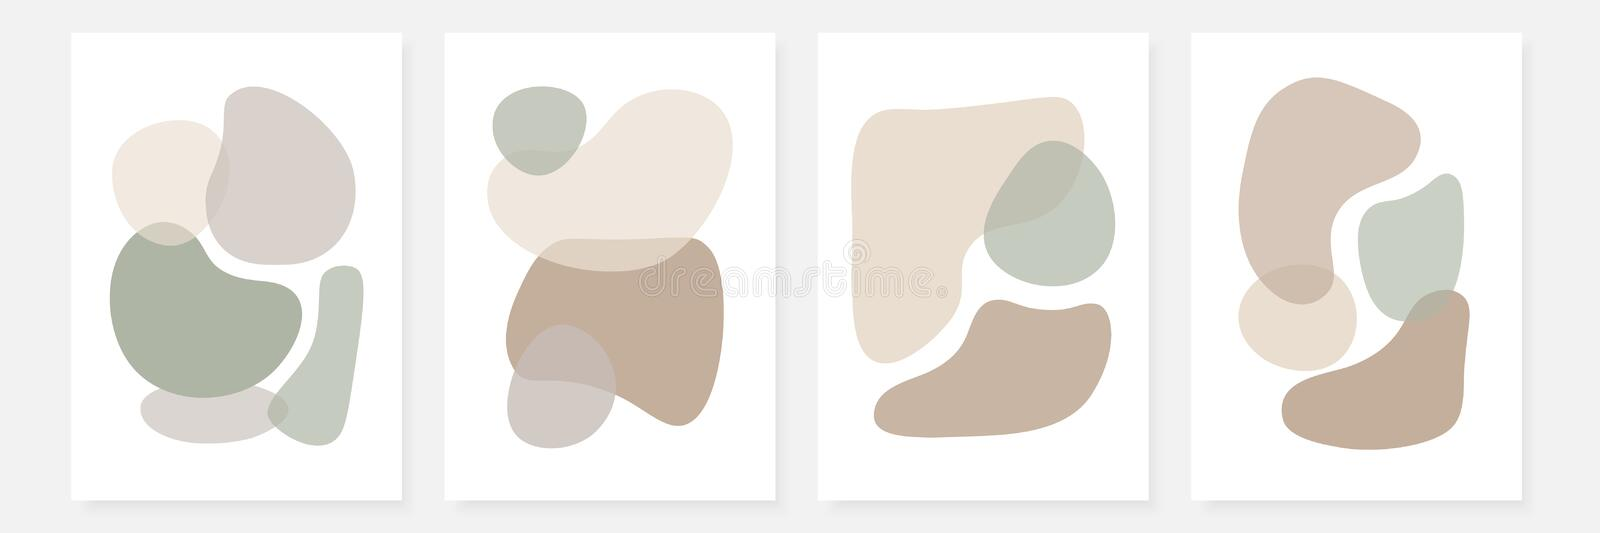 Set of stylish templates with abstract shapes in pastel colors. Contemporary collage design for invitations, flyers, cards, poster, covers etc royalty free illustration